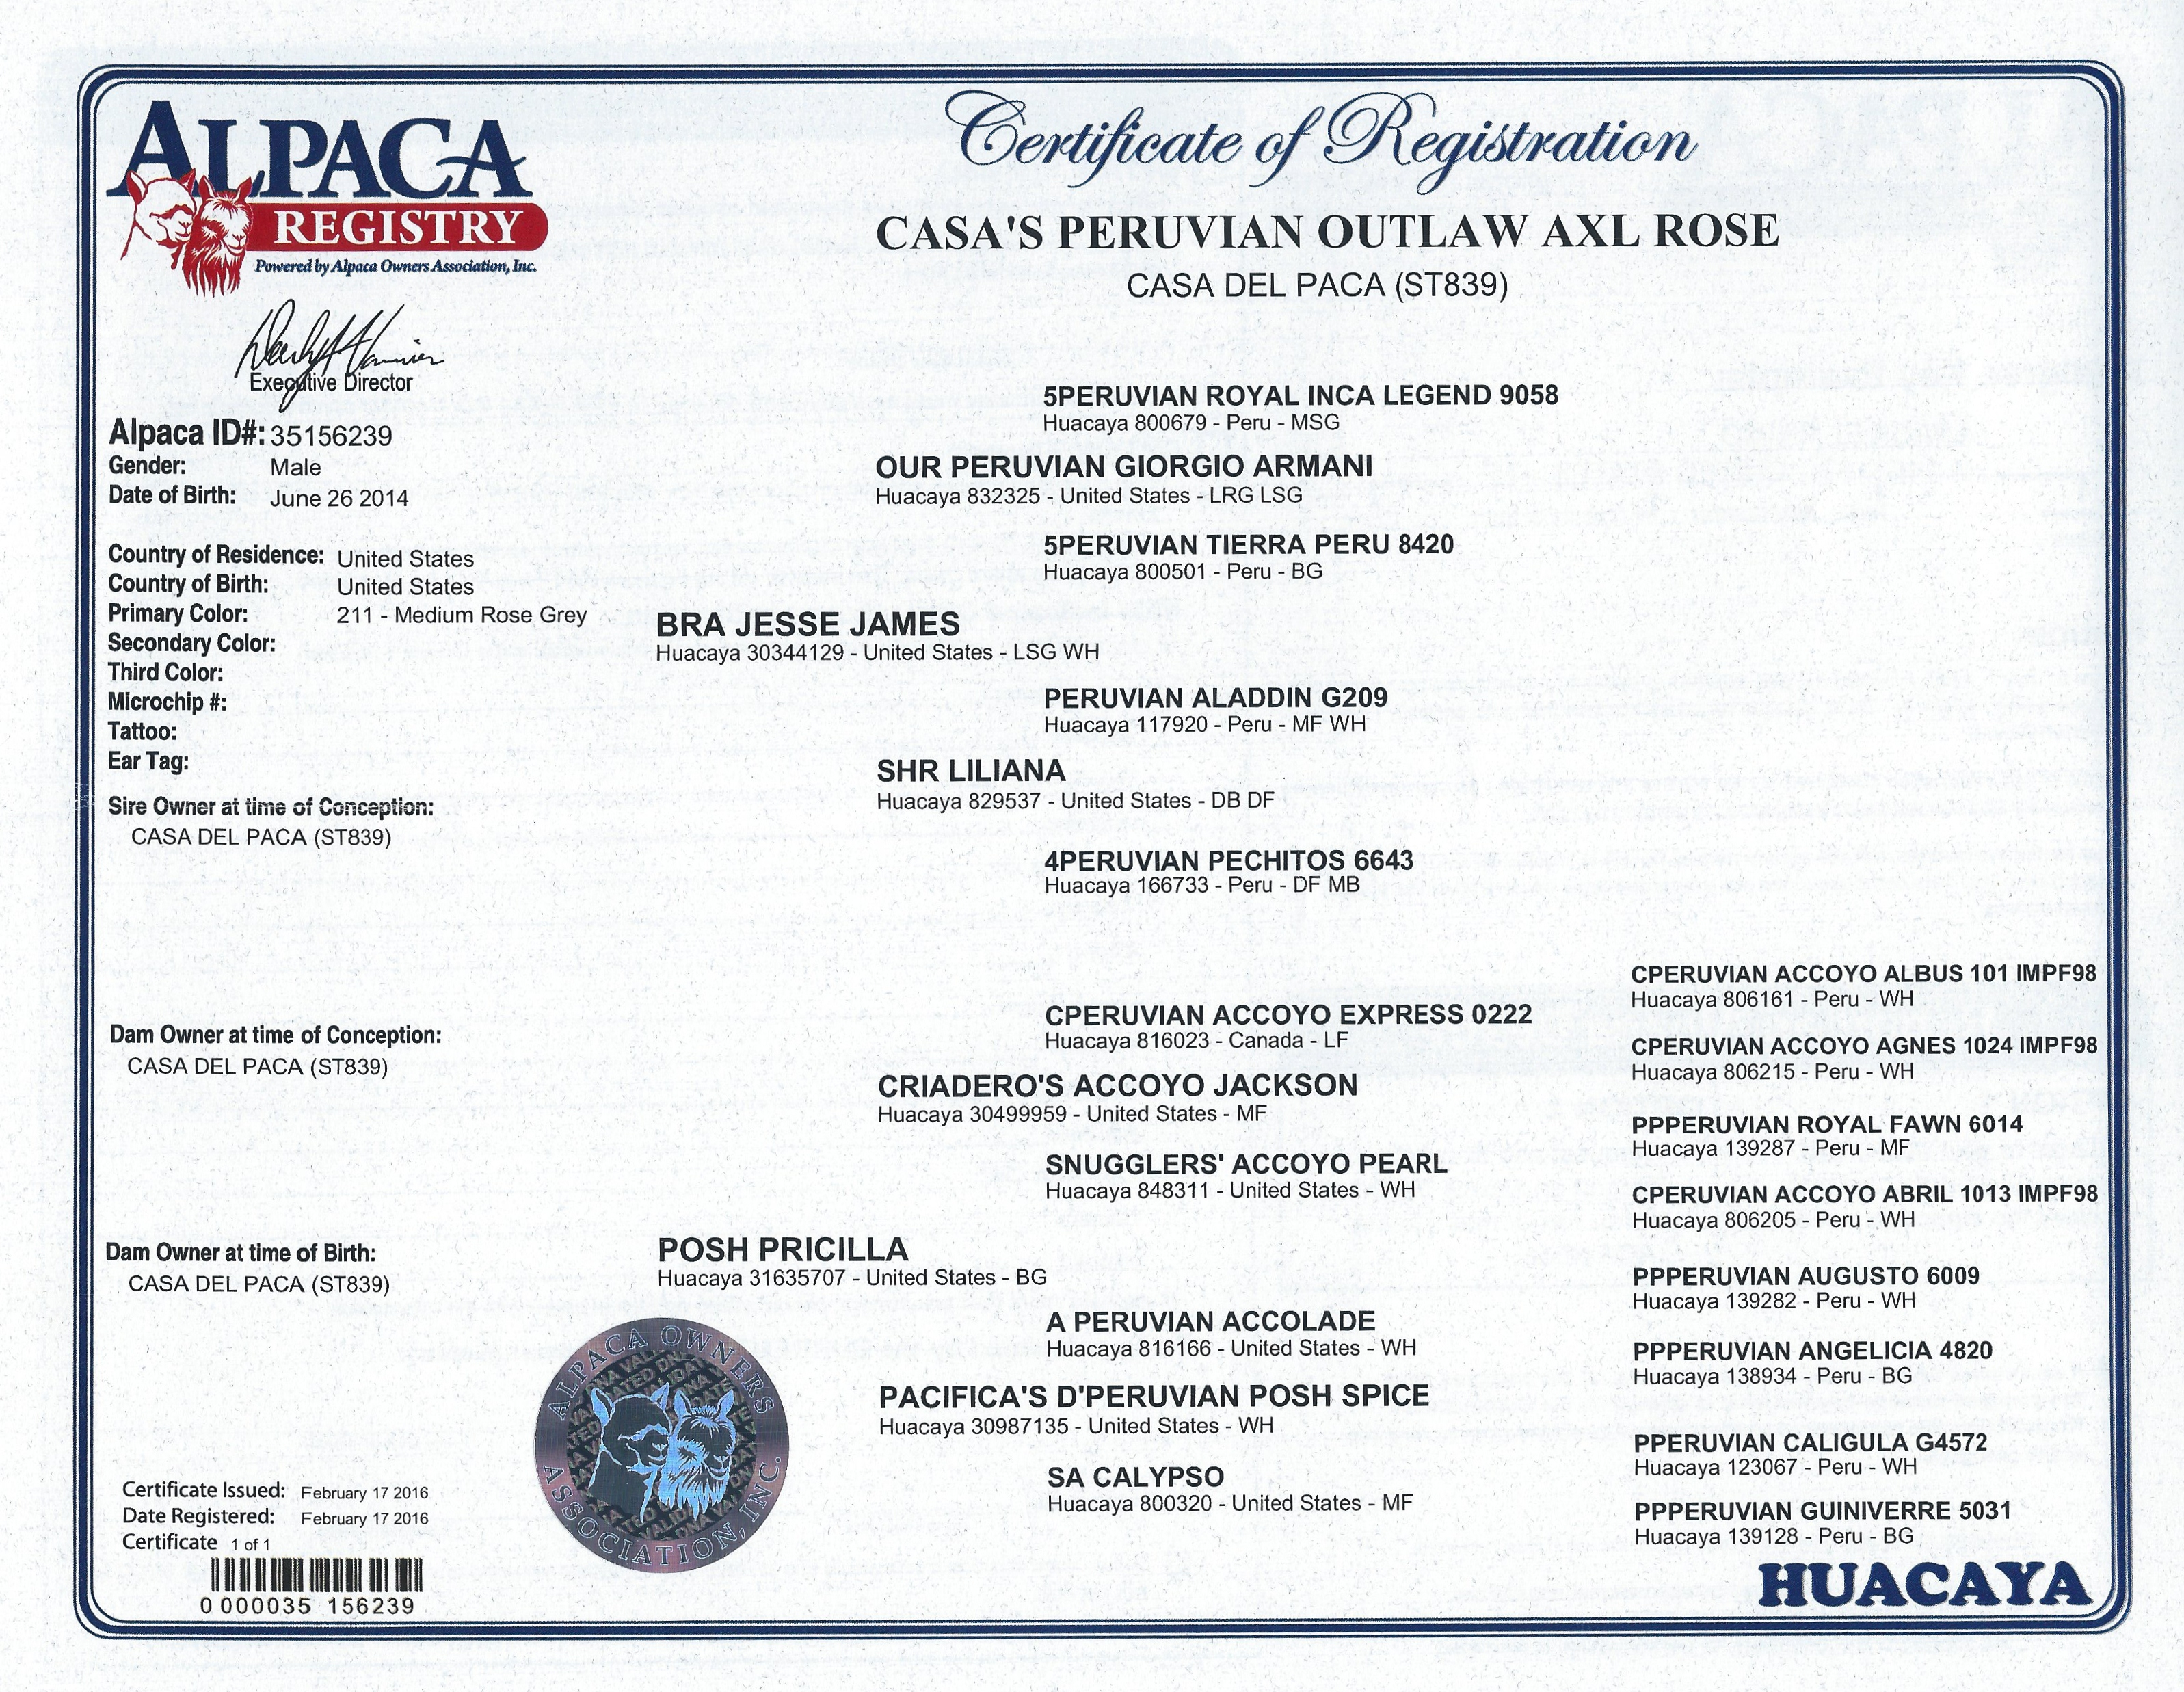 Alpacas for sale casas peruvian outlaw axl rose huacaya male certificate 1betcityfo Image collections